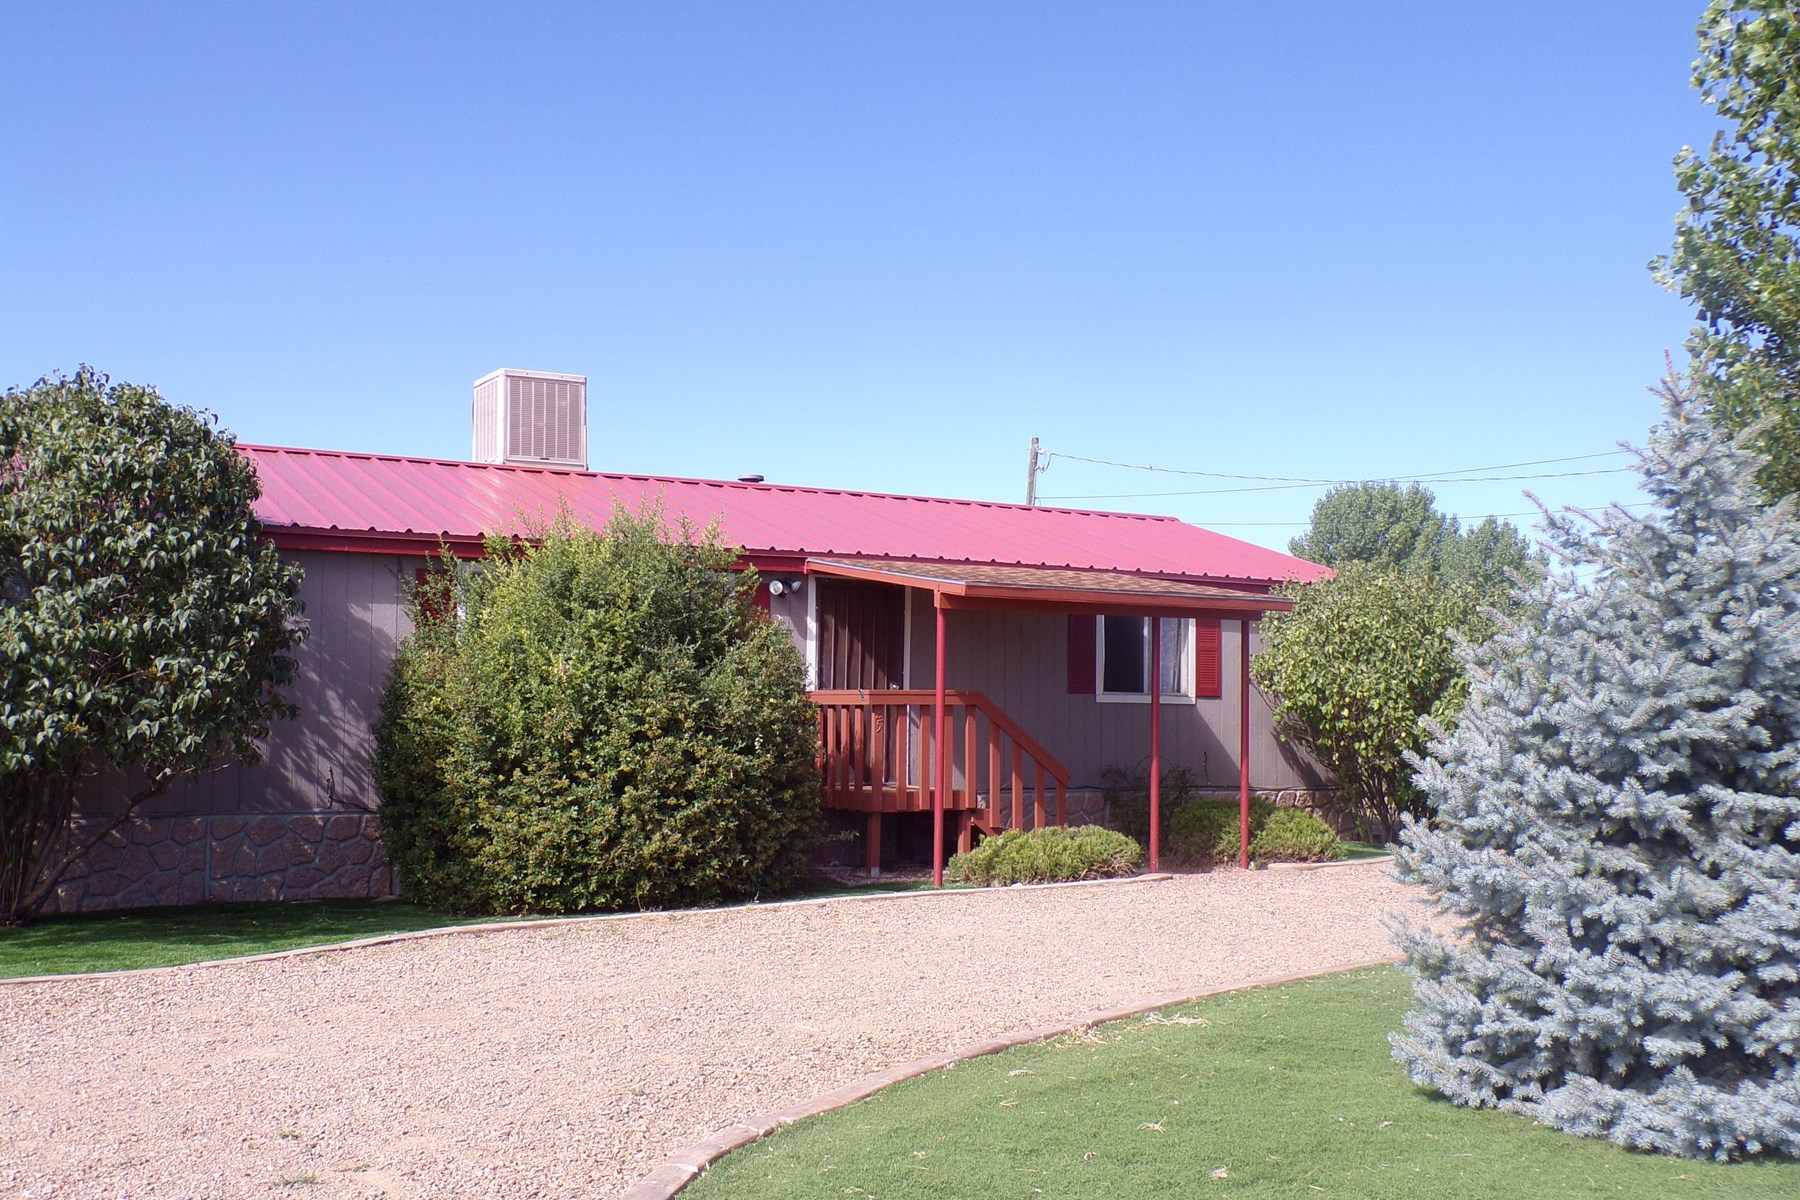 Country Home with Shop in Edgewood NM For Sale